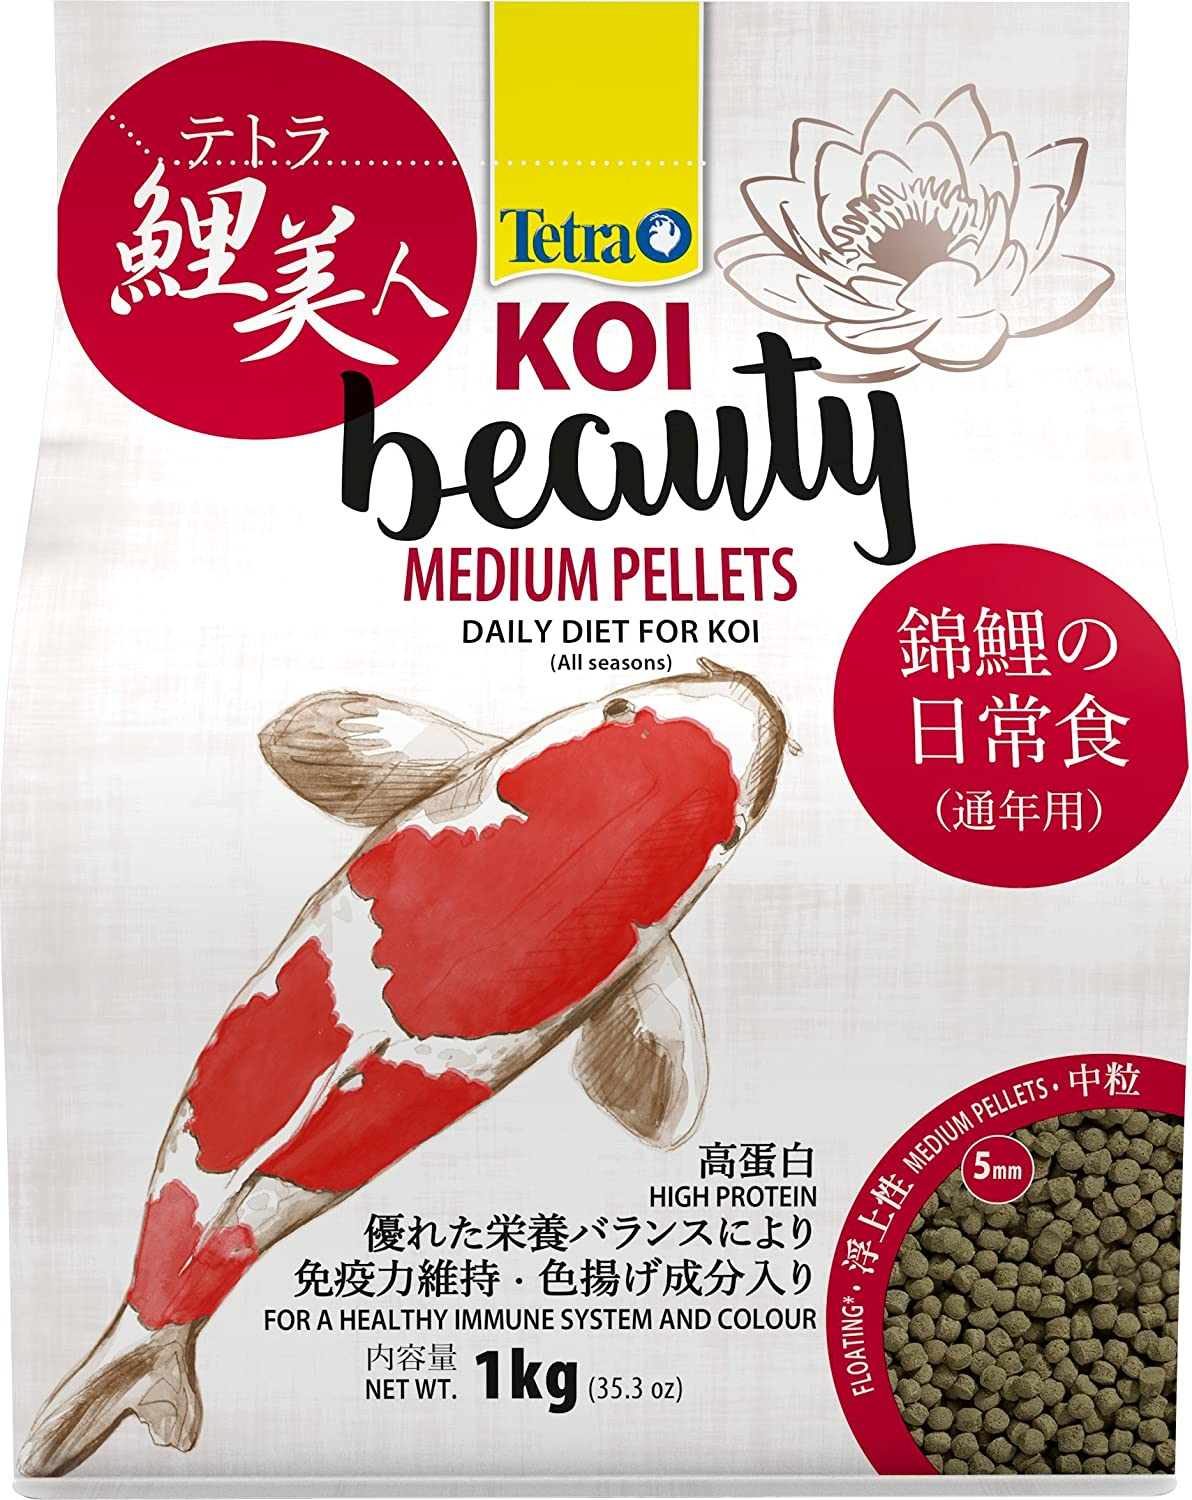 Tetra Koi Beauty Pellets for Small Fish, 10 Litre Spectrum Brands 4004218263314